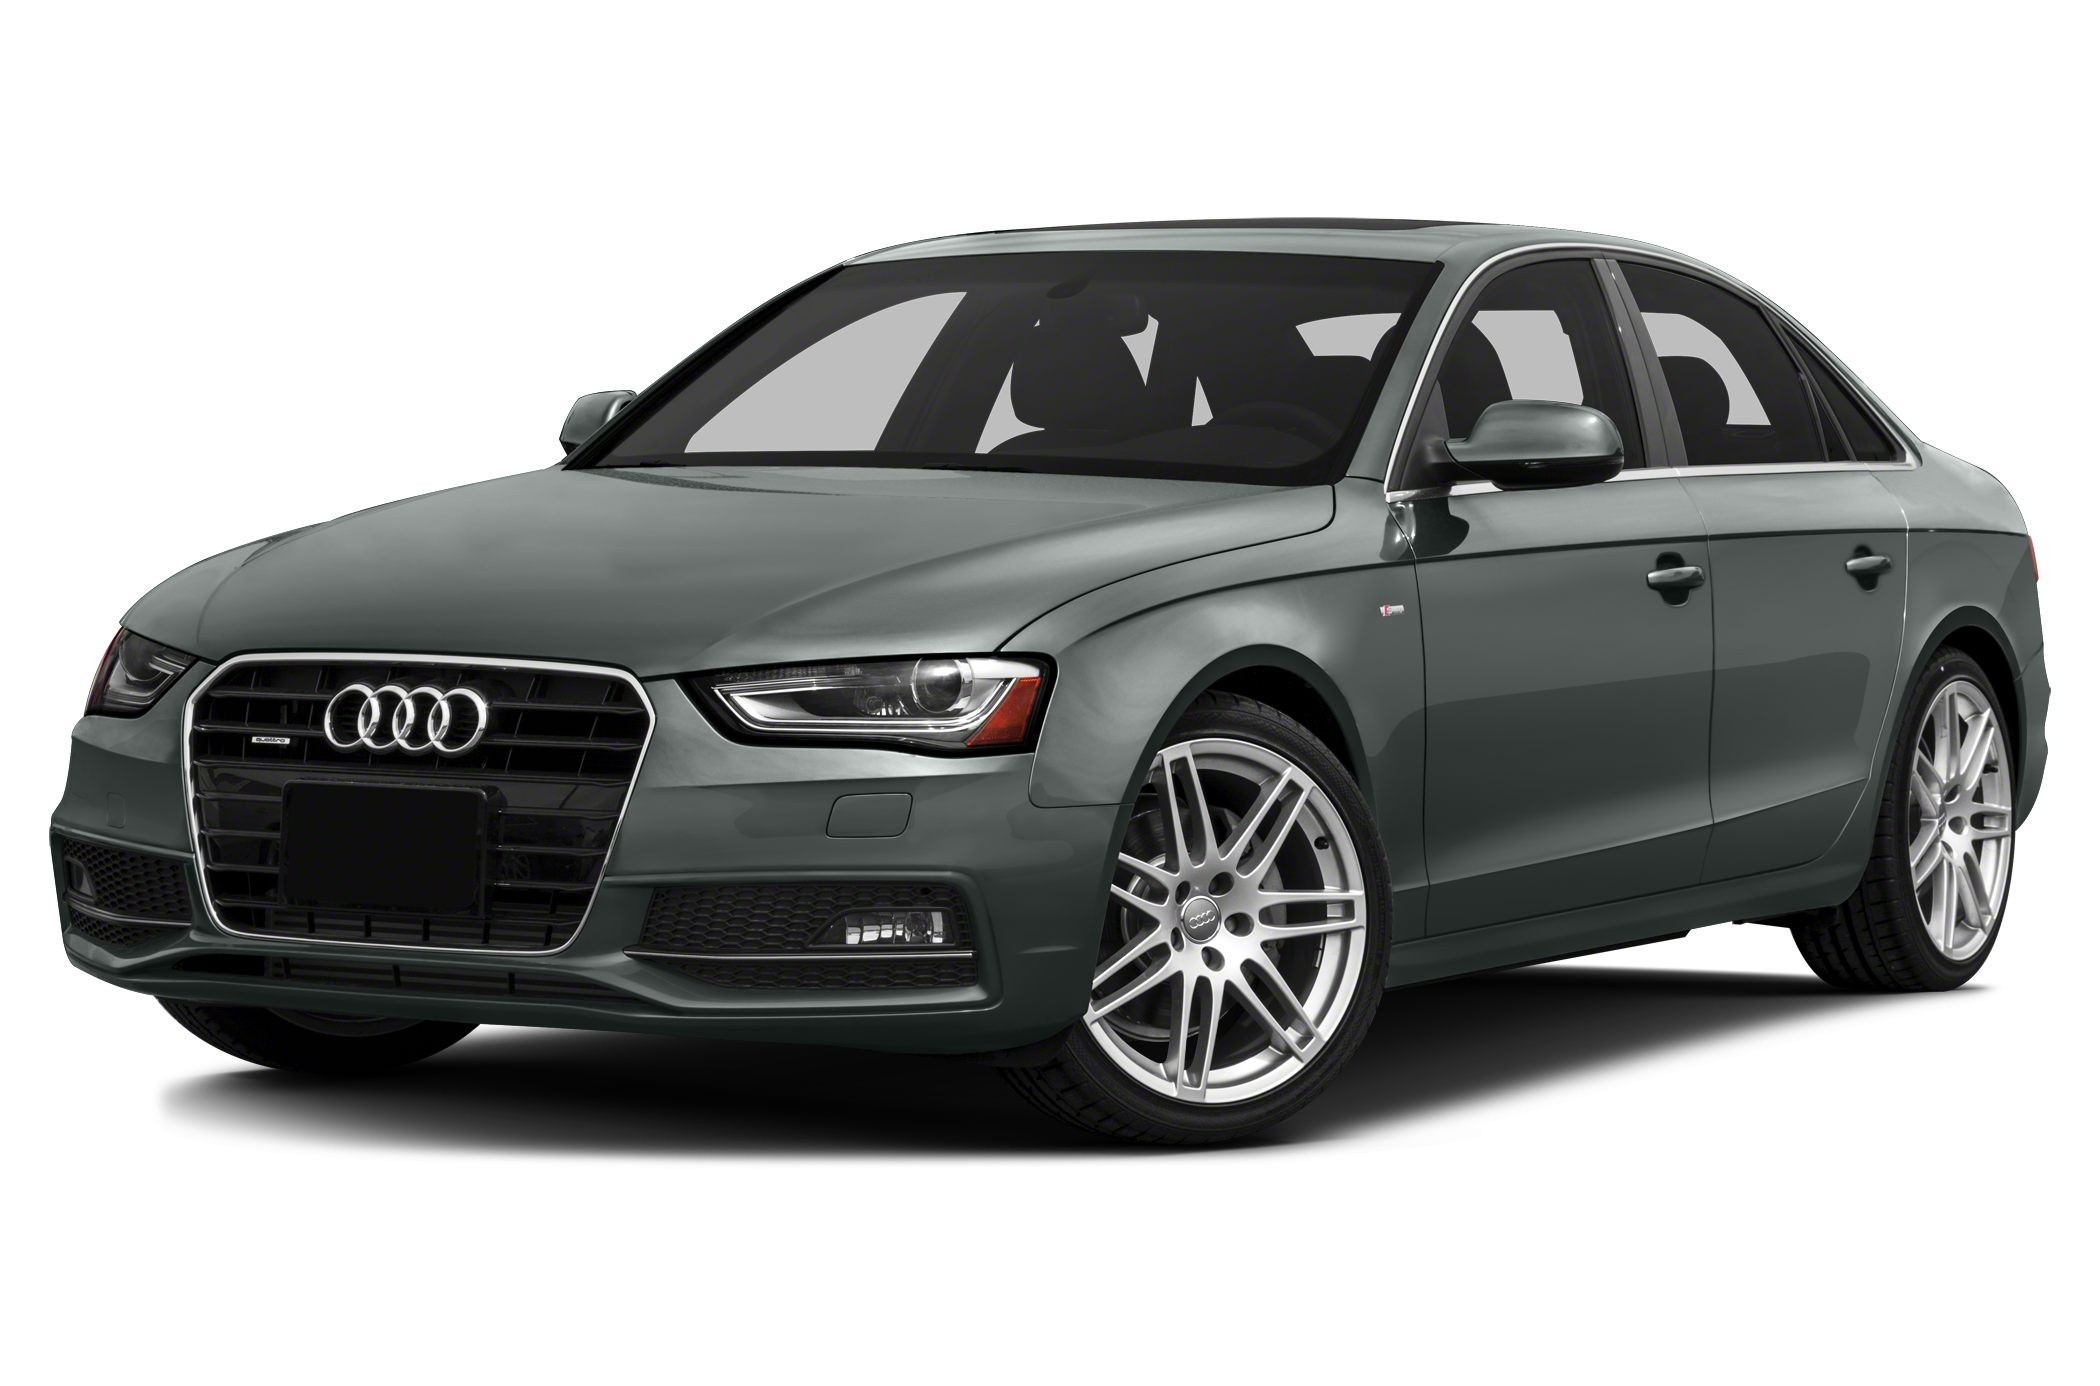 Modified Audi A4 for Sale Fresh 2013 Audi A4 Information-1710 Of Lovely Modified Audi A4 for Sale